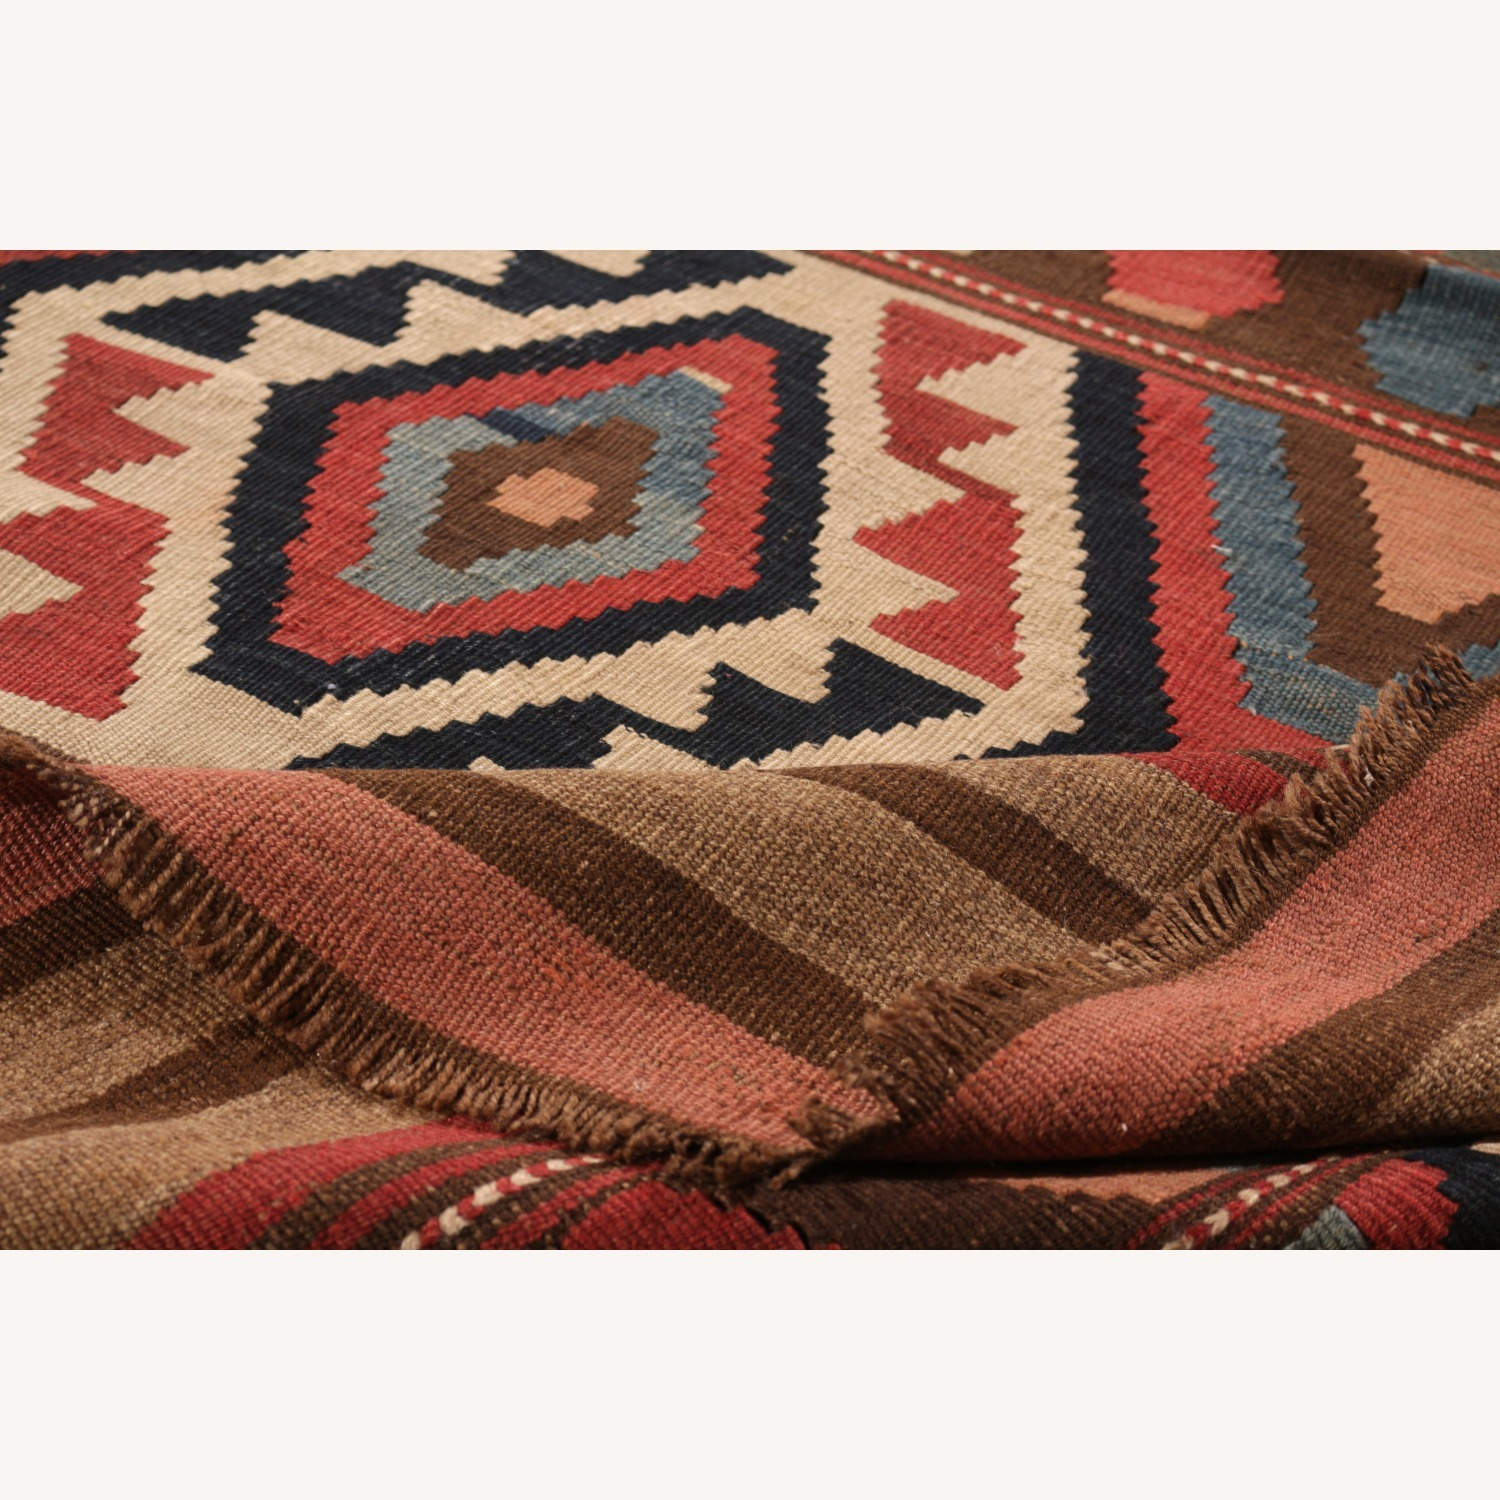 Antique Shahsavan Rug Transitional Tribal Pattern - image-3